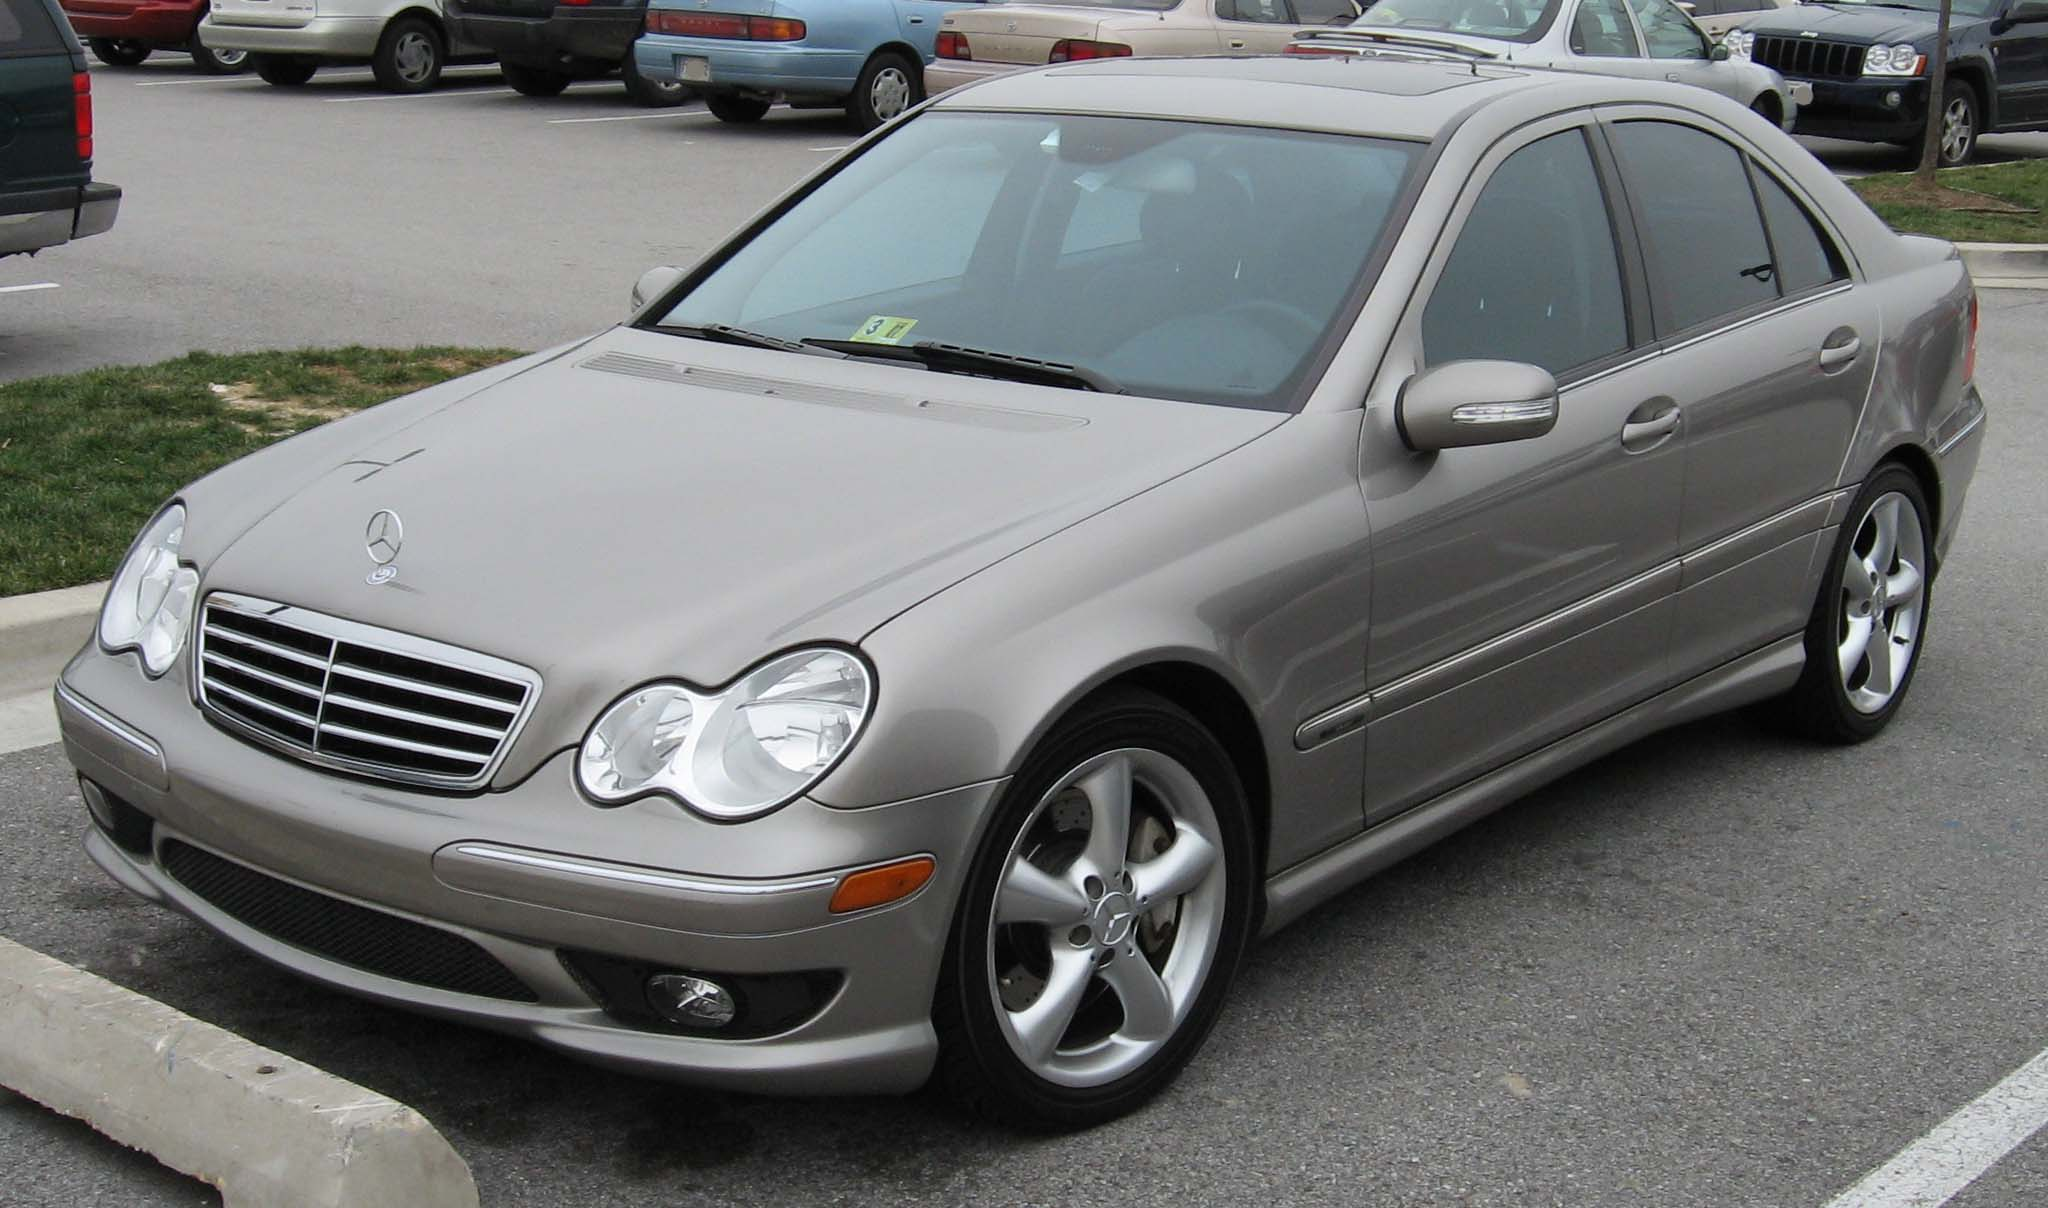 Mercedes-Benz C-Class is a leading maker of some of the finest cars Wallpaper Gallery Free